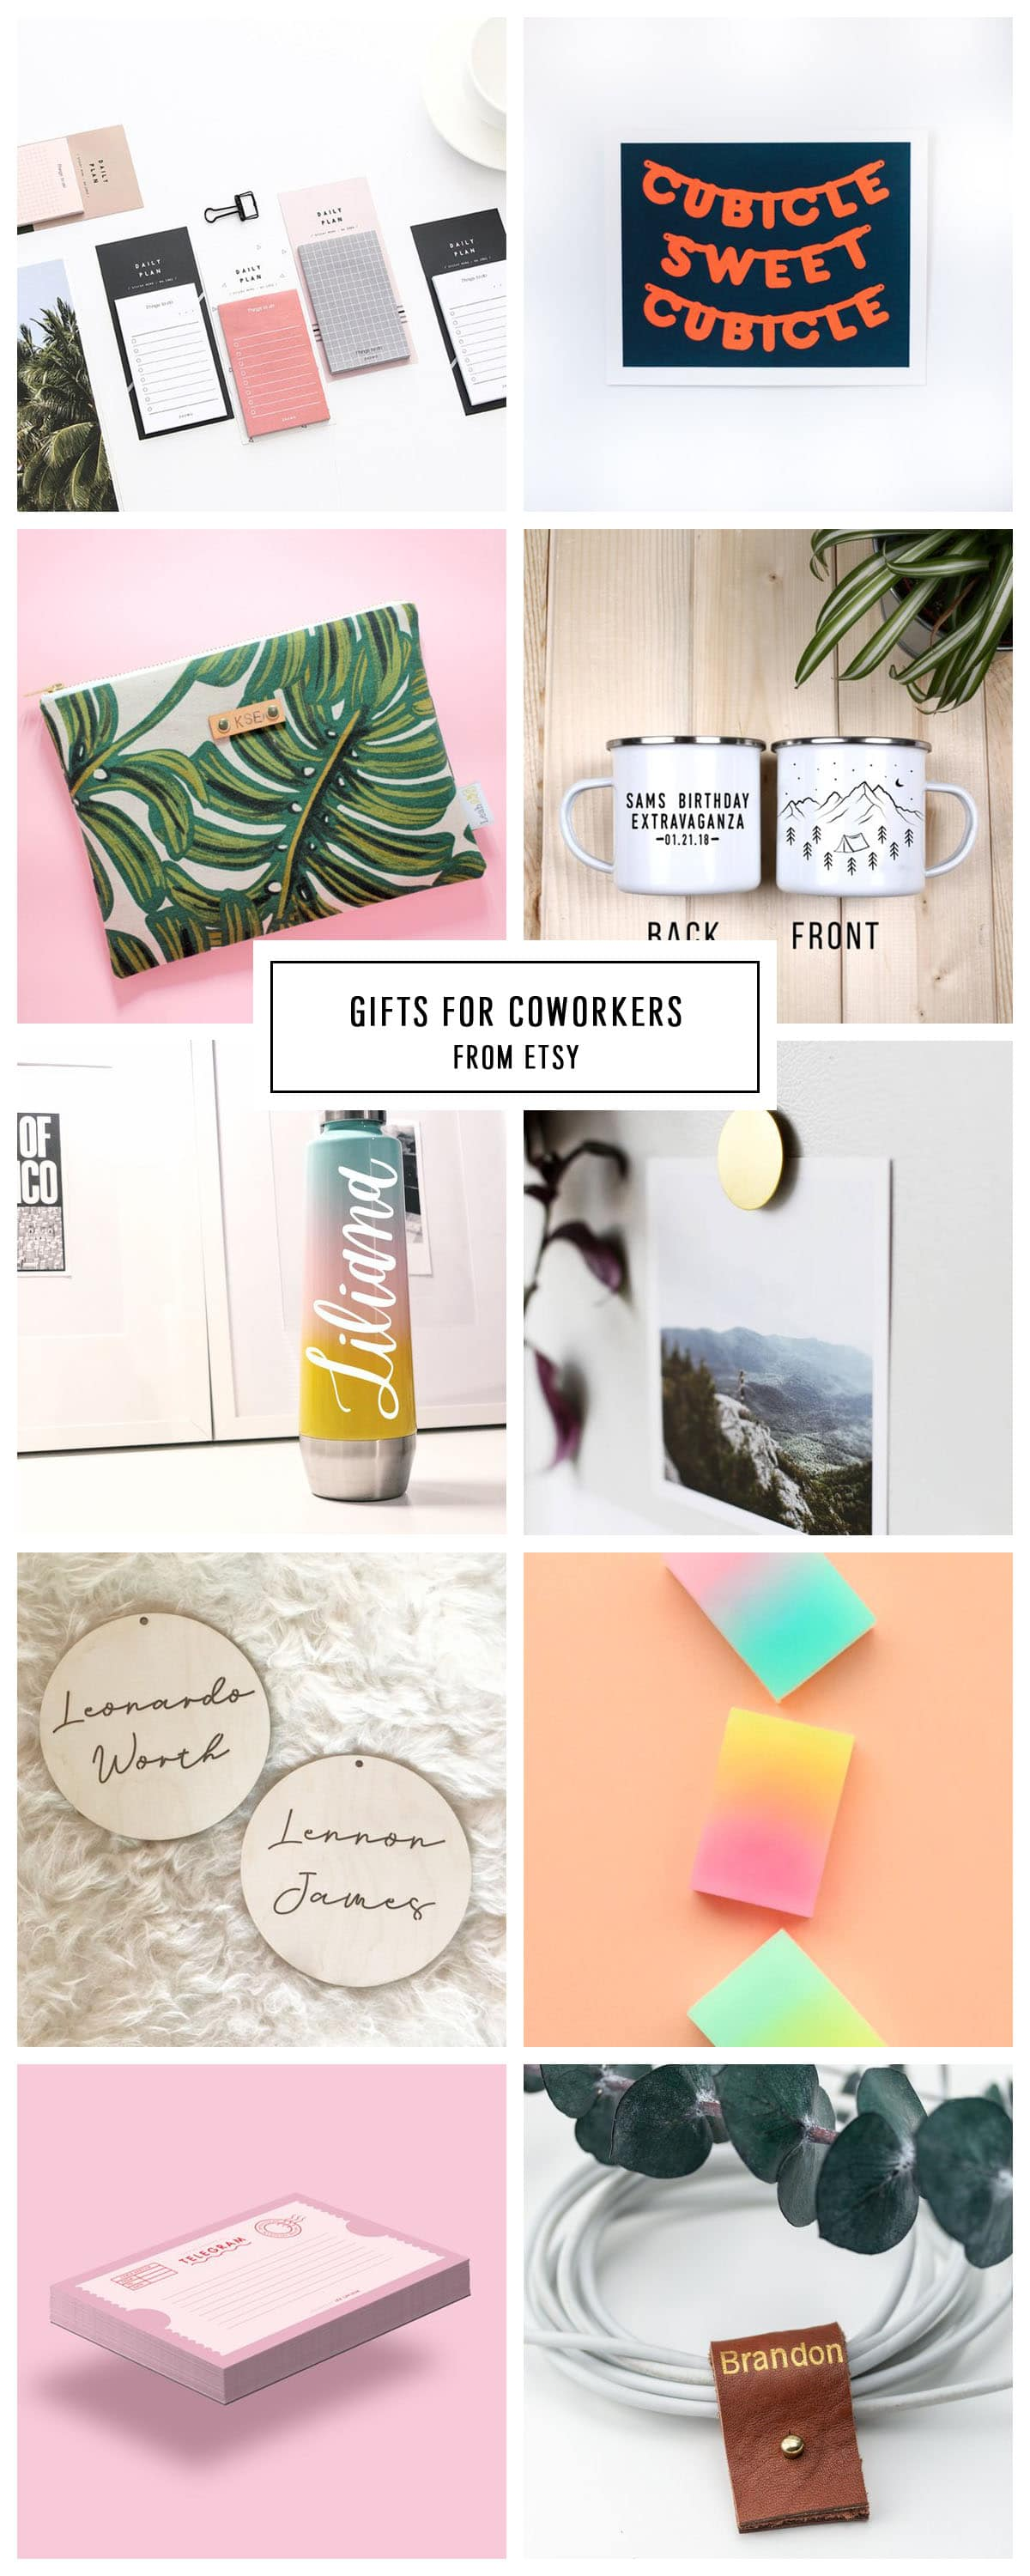 COMPLETE ETSY GIFT GUIDE FOR COWORKERS UNDER $75 by Houston lifestyle blogger Ashley Rose of Sugar and Cloth -- #giftguide #christmas #entertaining #holidaygifts #presents